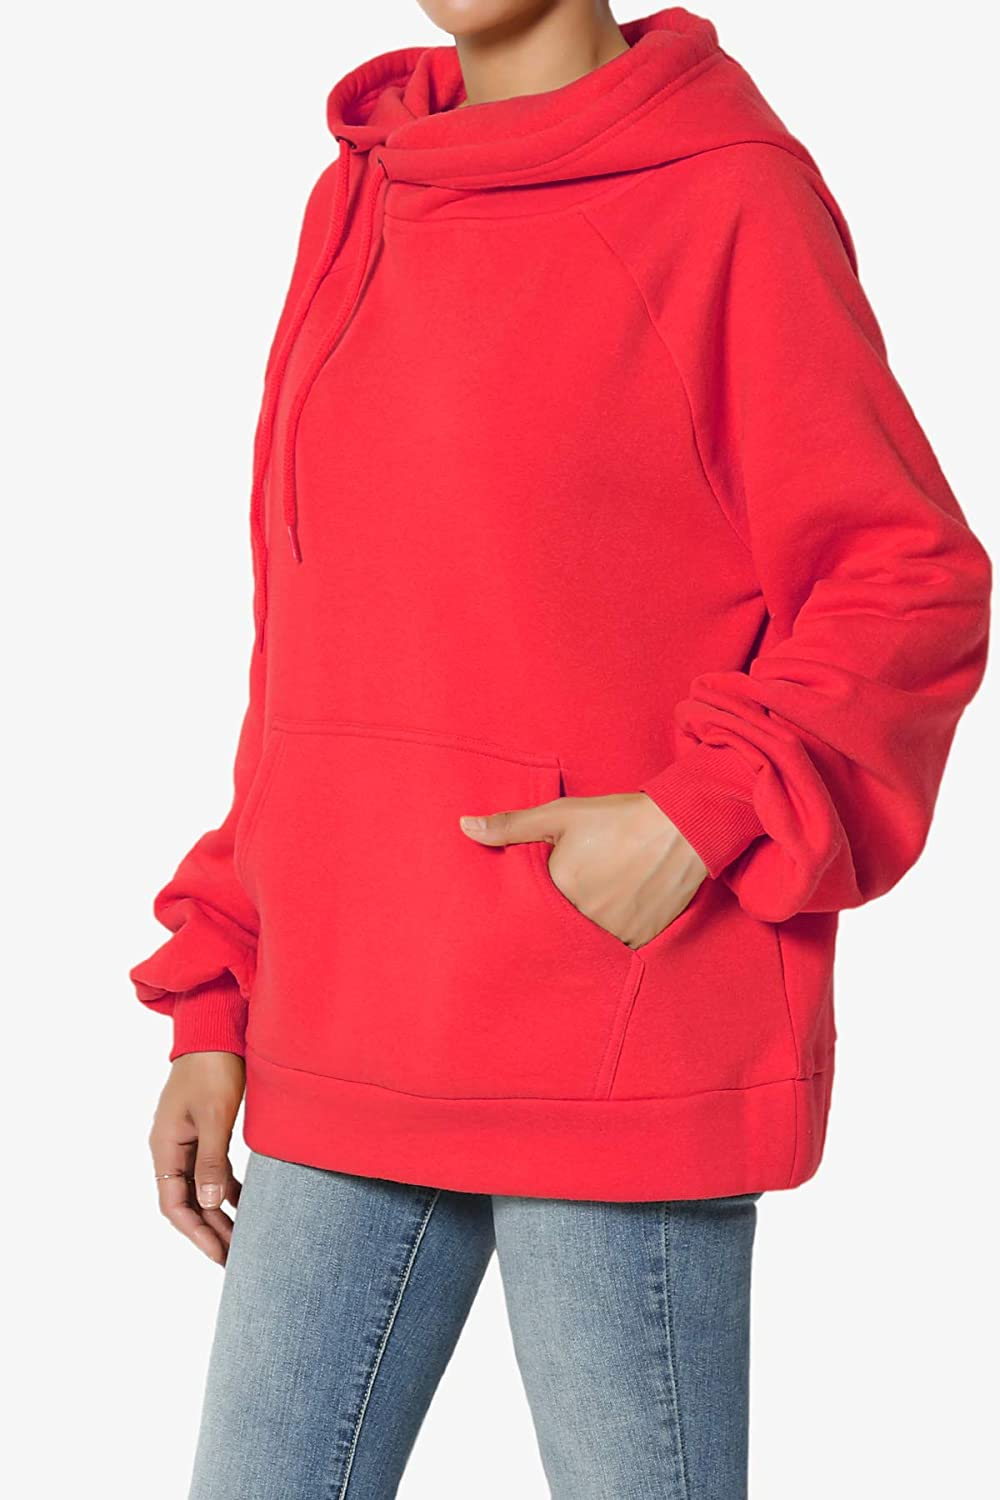 TheMogan Side Drawstring Cozy Fleece Relaxed Fit Hooded Pullover Sweatshirts